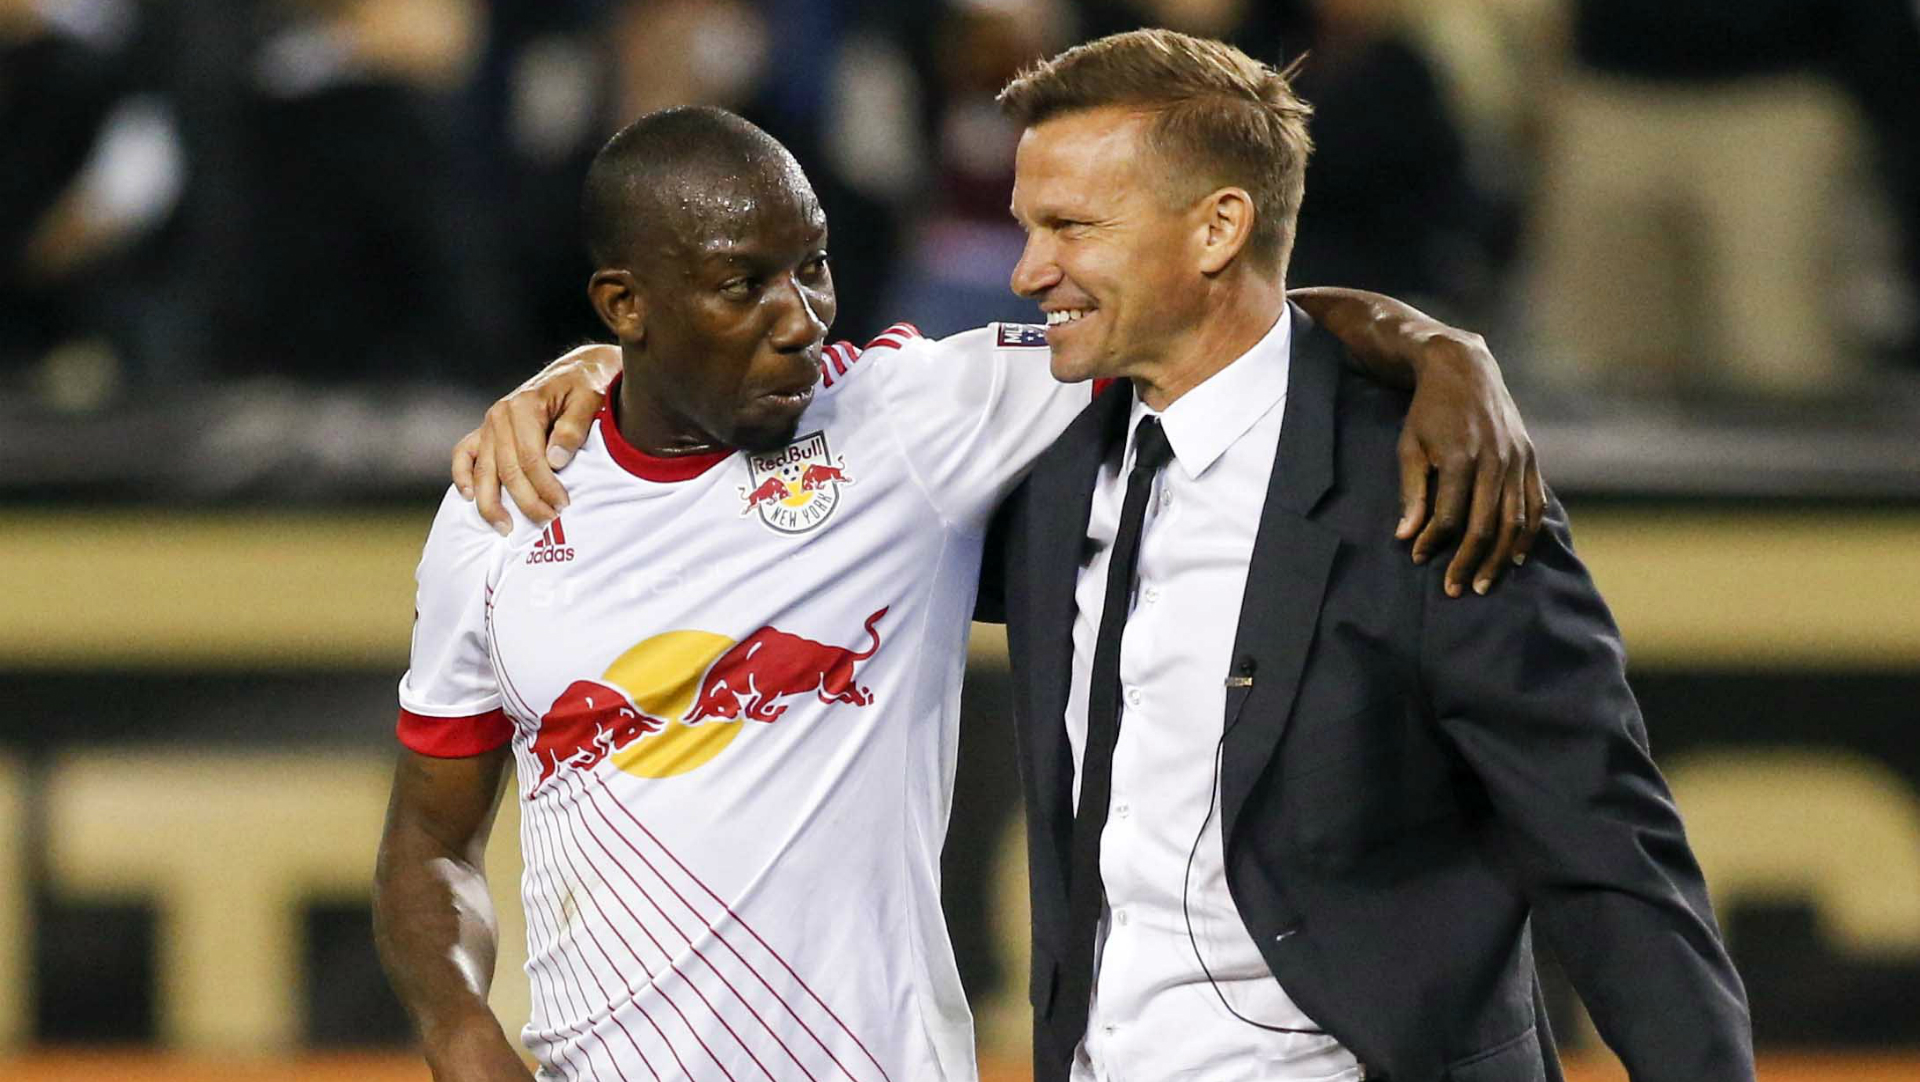 Bradley-wright-phillips-jesse-marsch-new-york-red-bulls_1583vshxqzcc31t2n2gdf51jlv